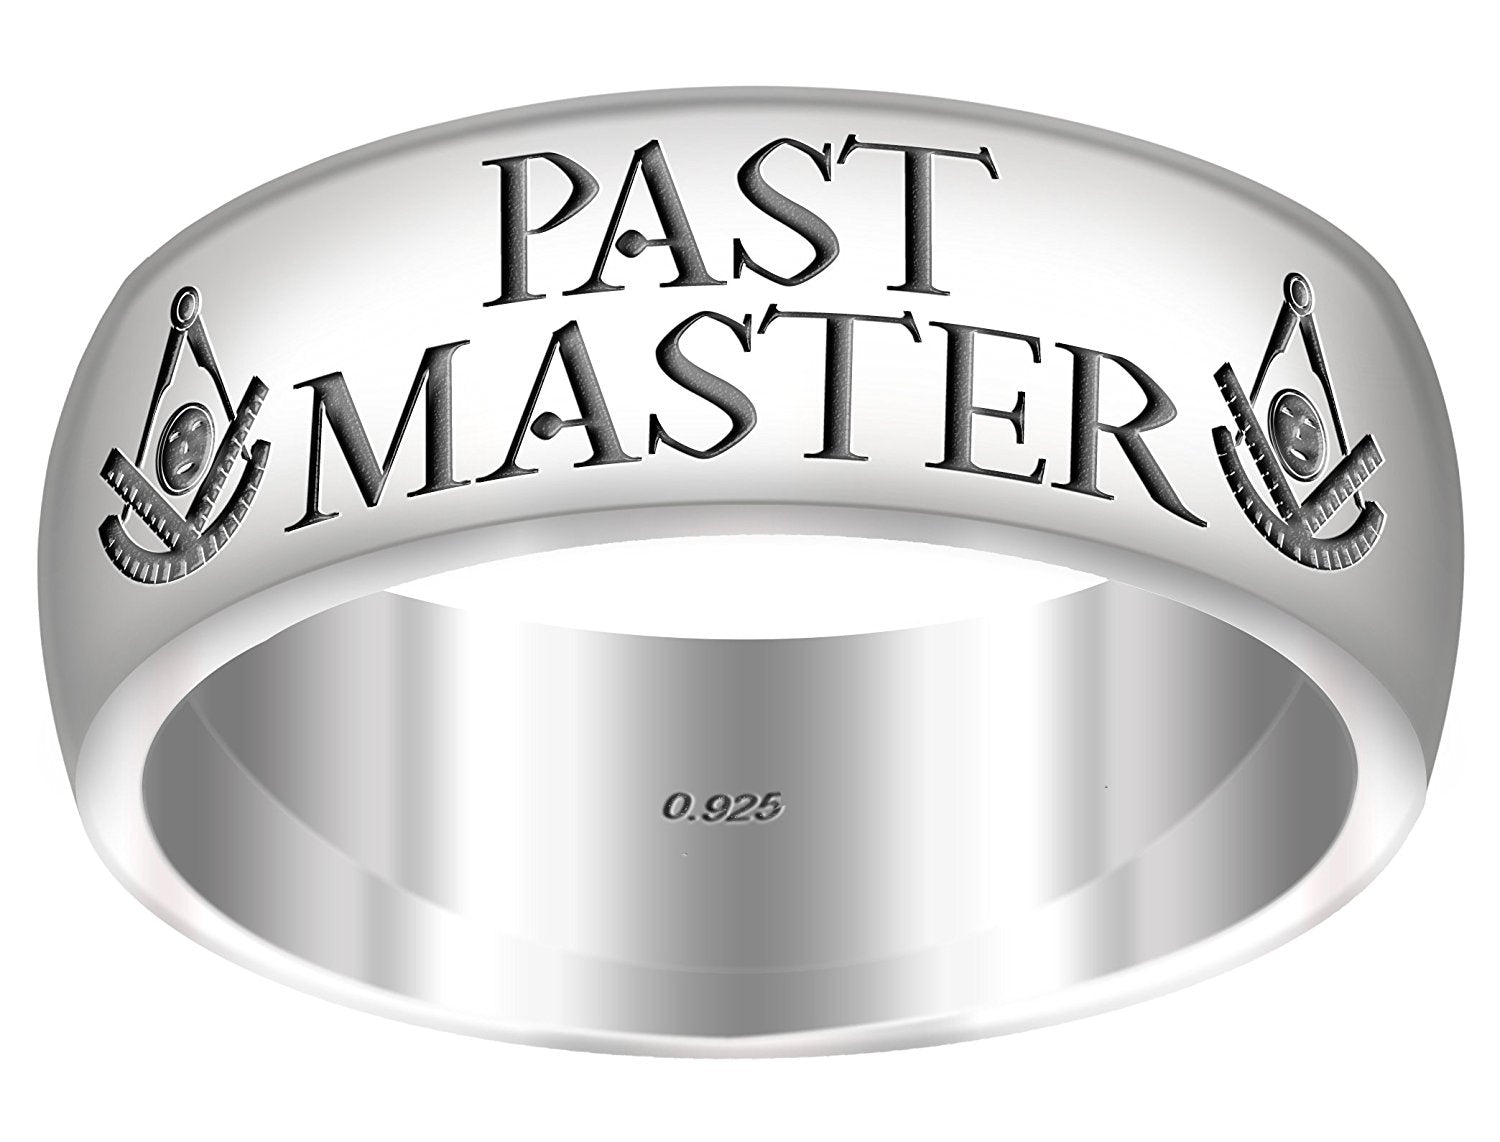 Past Master Ring Freemason 0.925 Sterling Silver 8mm